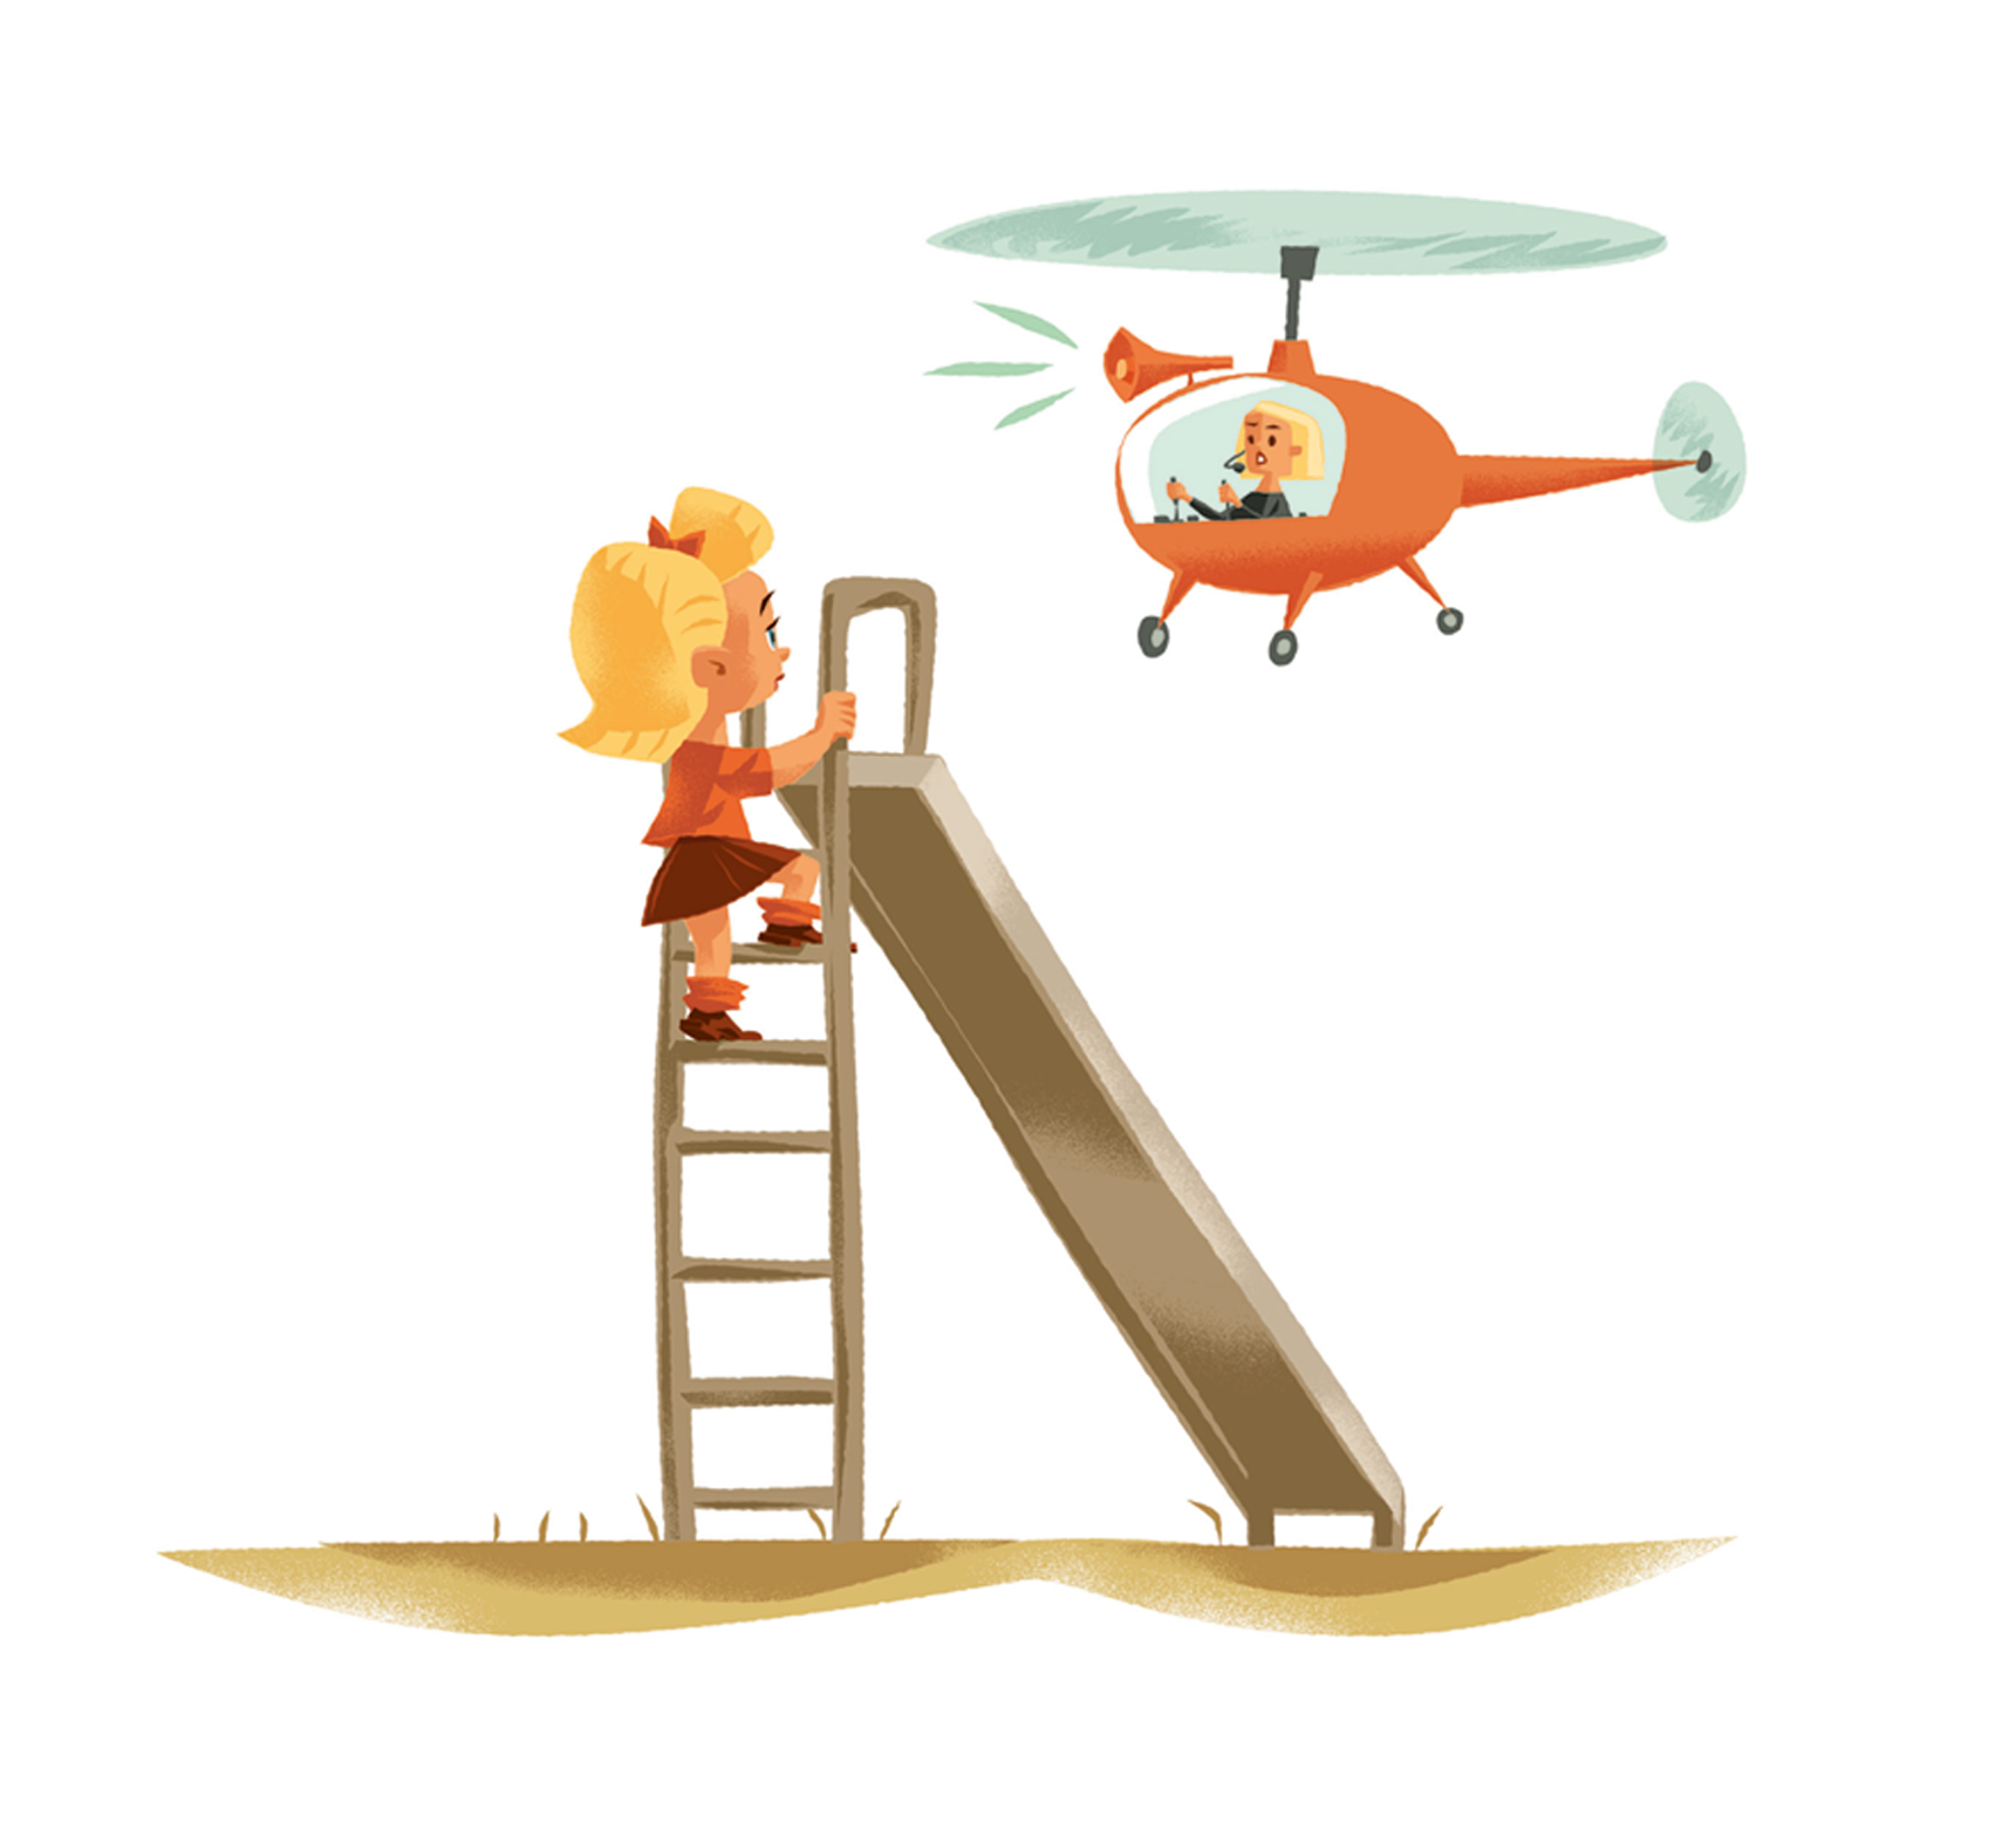 Is Your Parenting Style Free Range Or Helicopter